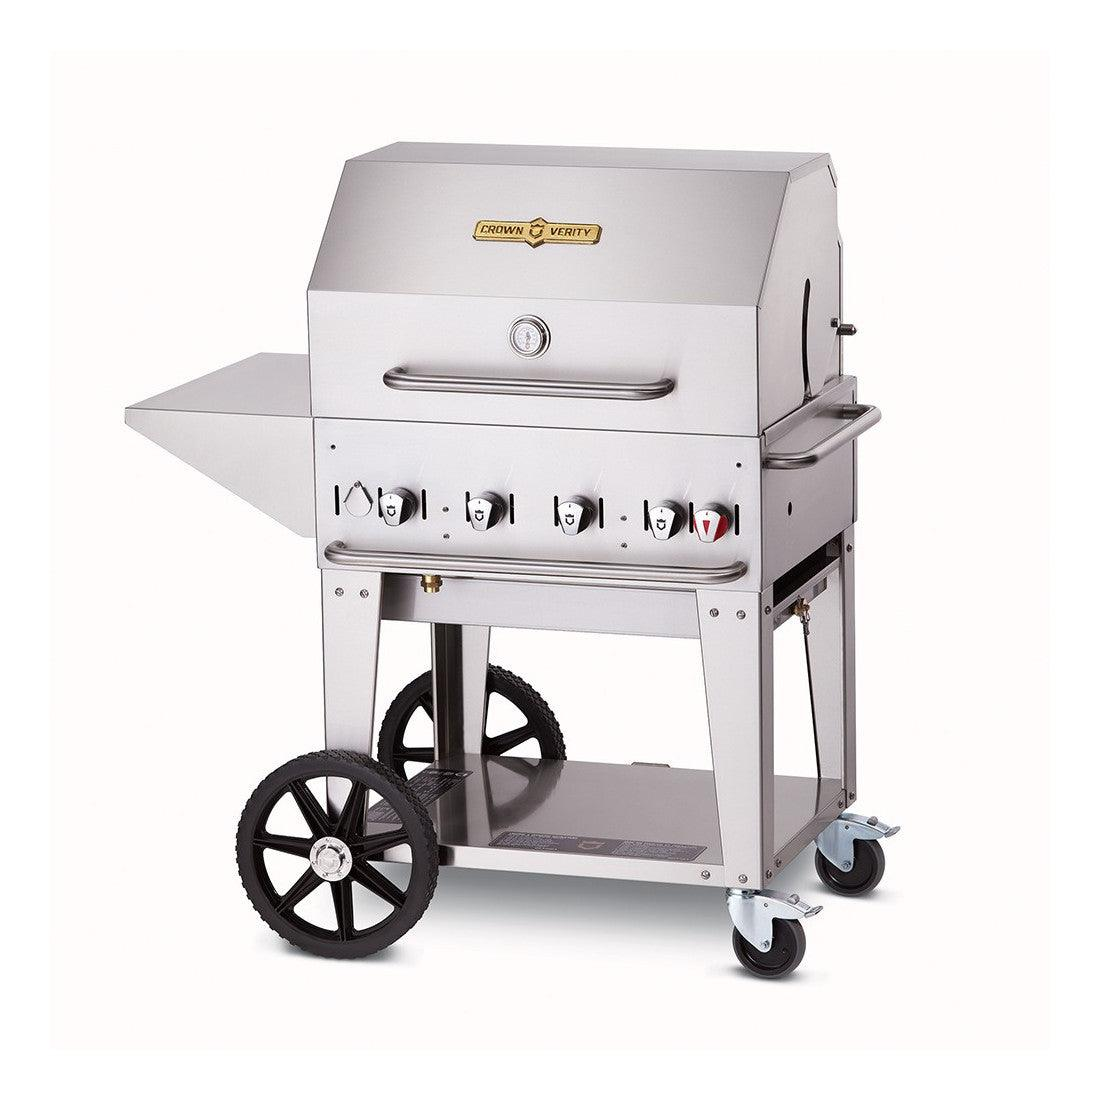 Crown Verity Mcb 30pkg 30 Mobile Bbq Grill With Roll Dome Package Three Phase Wiring Diagram Hobart Fryer Pkg